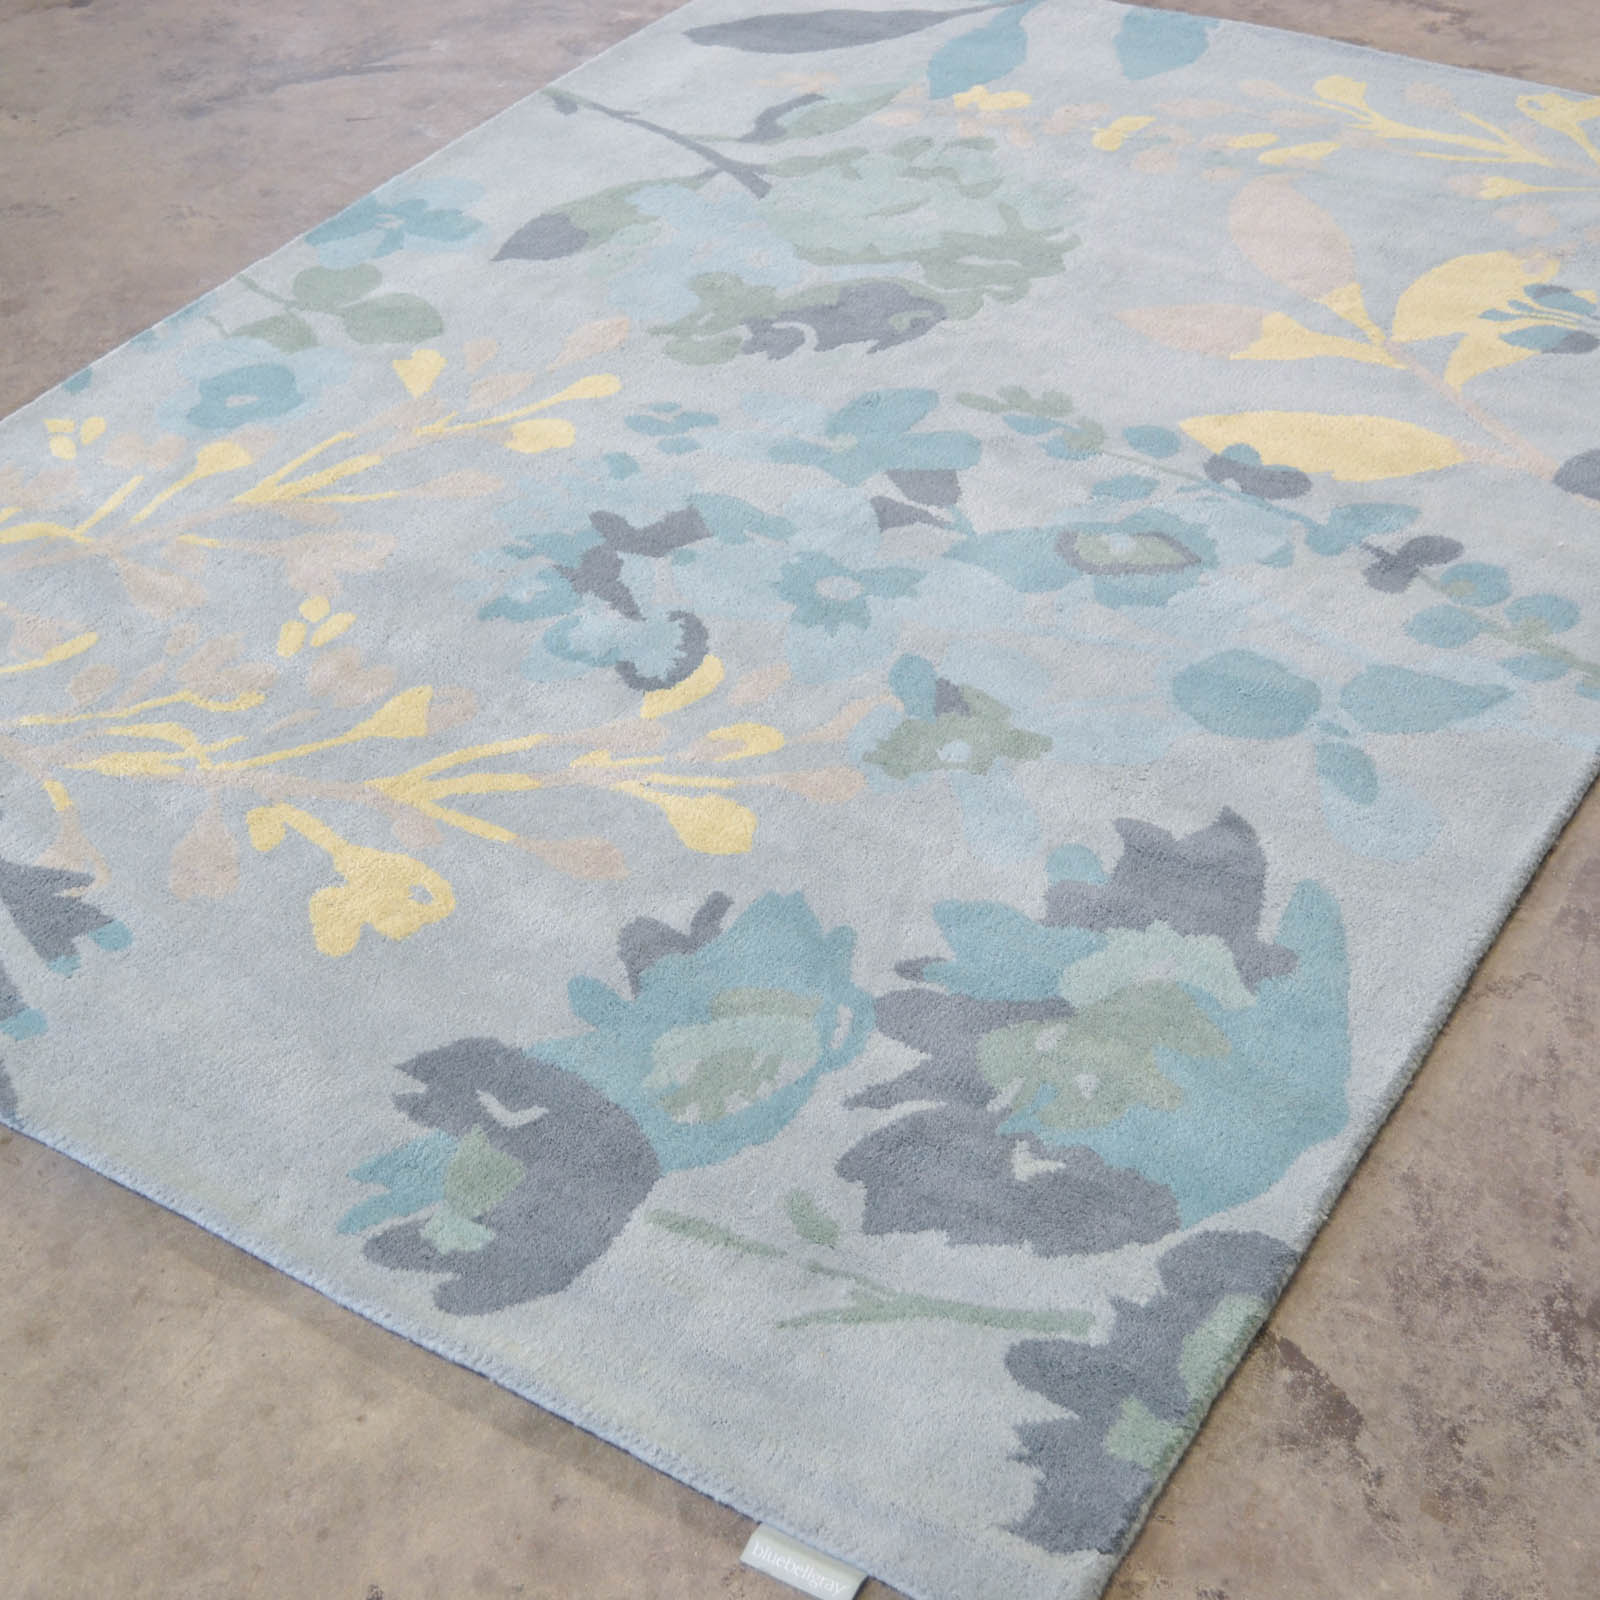 Braybrooke Rugs 19307 by Bluebellgray in Teal